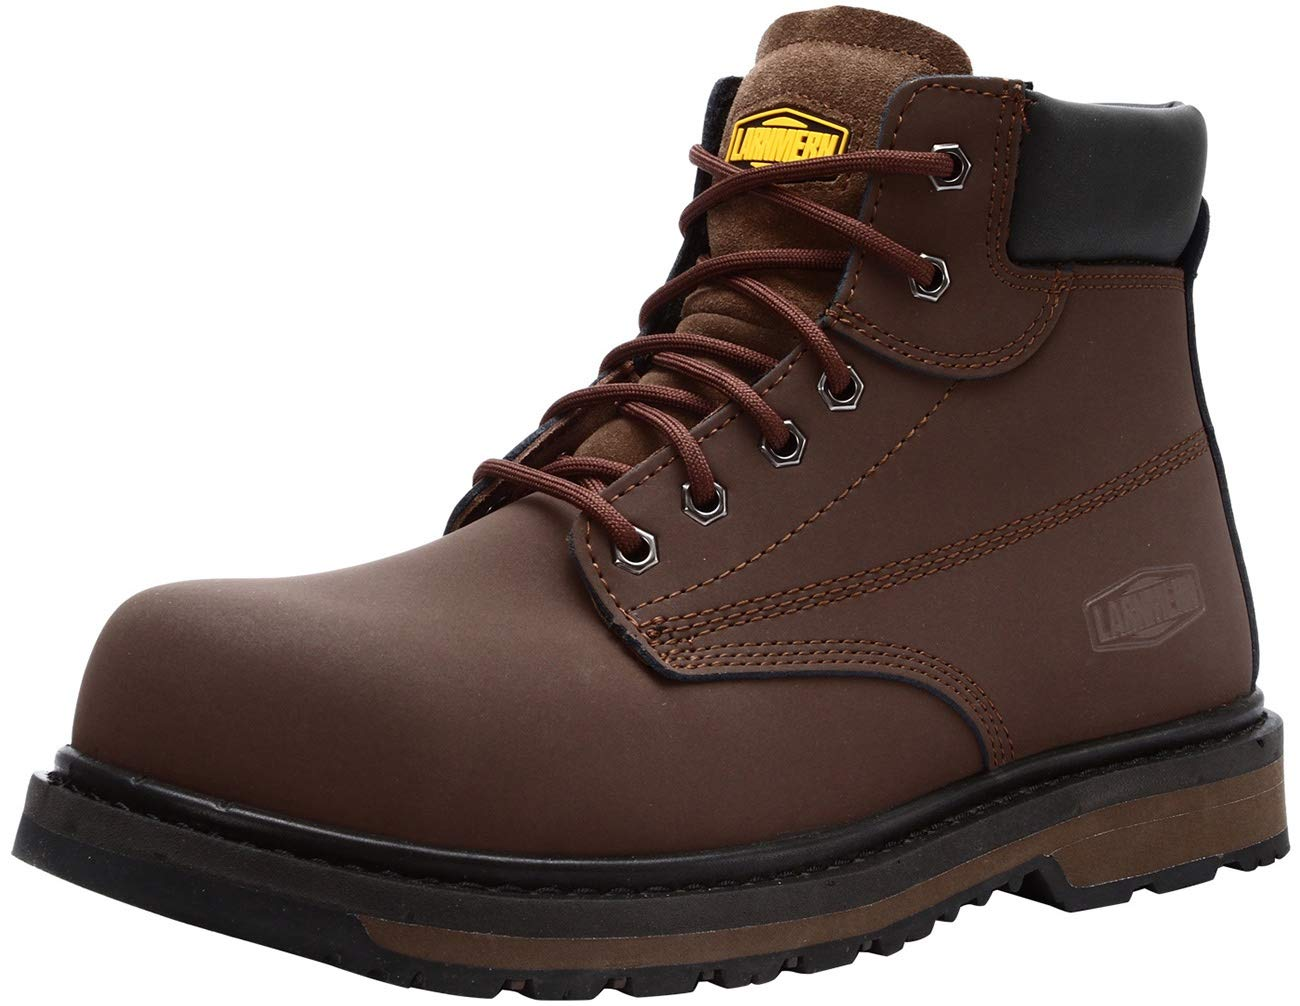 LARNMERN Work Boots for Men, L-8058 Steel Toe Safety Shoes Waterproof Slip Resistant Puncture Proof Construction Boots